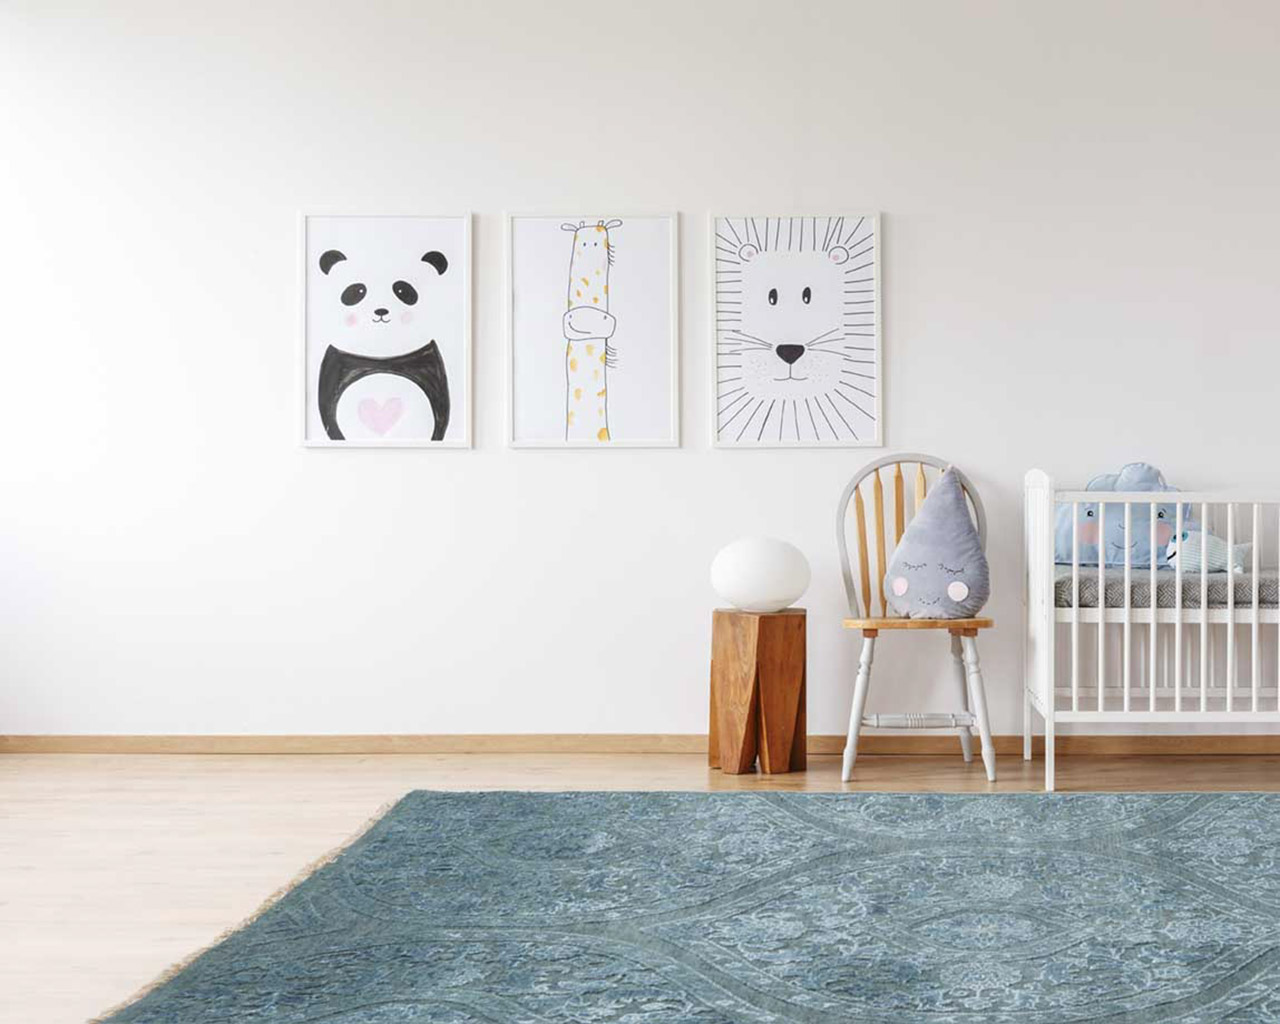 acheter branche tapis des gamins piece bebe chariot